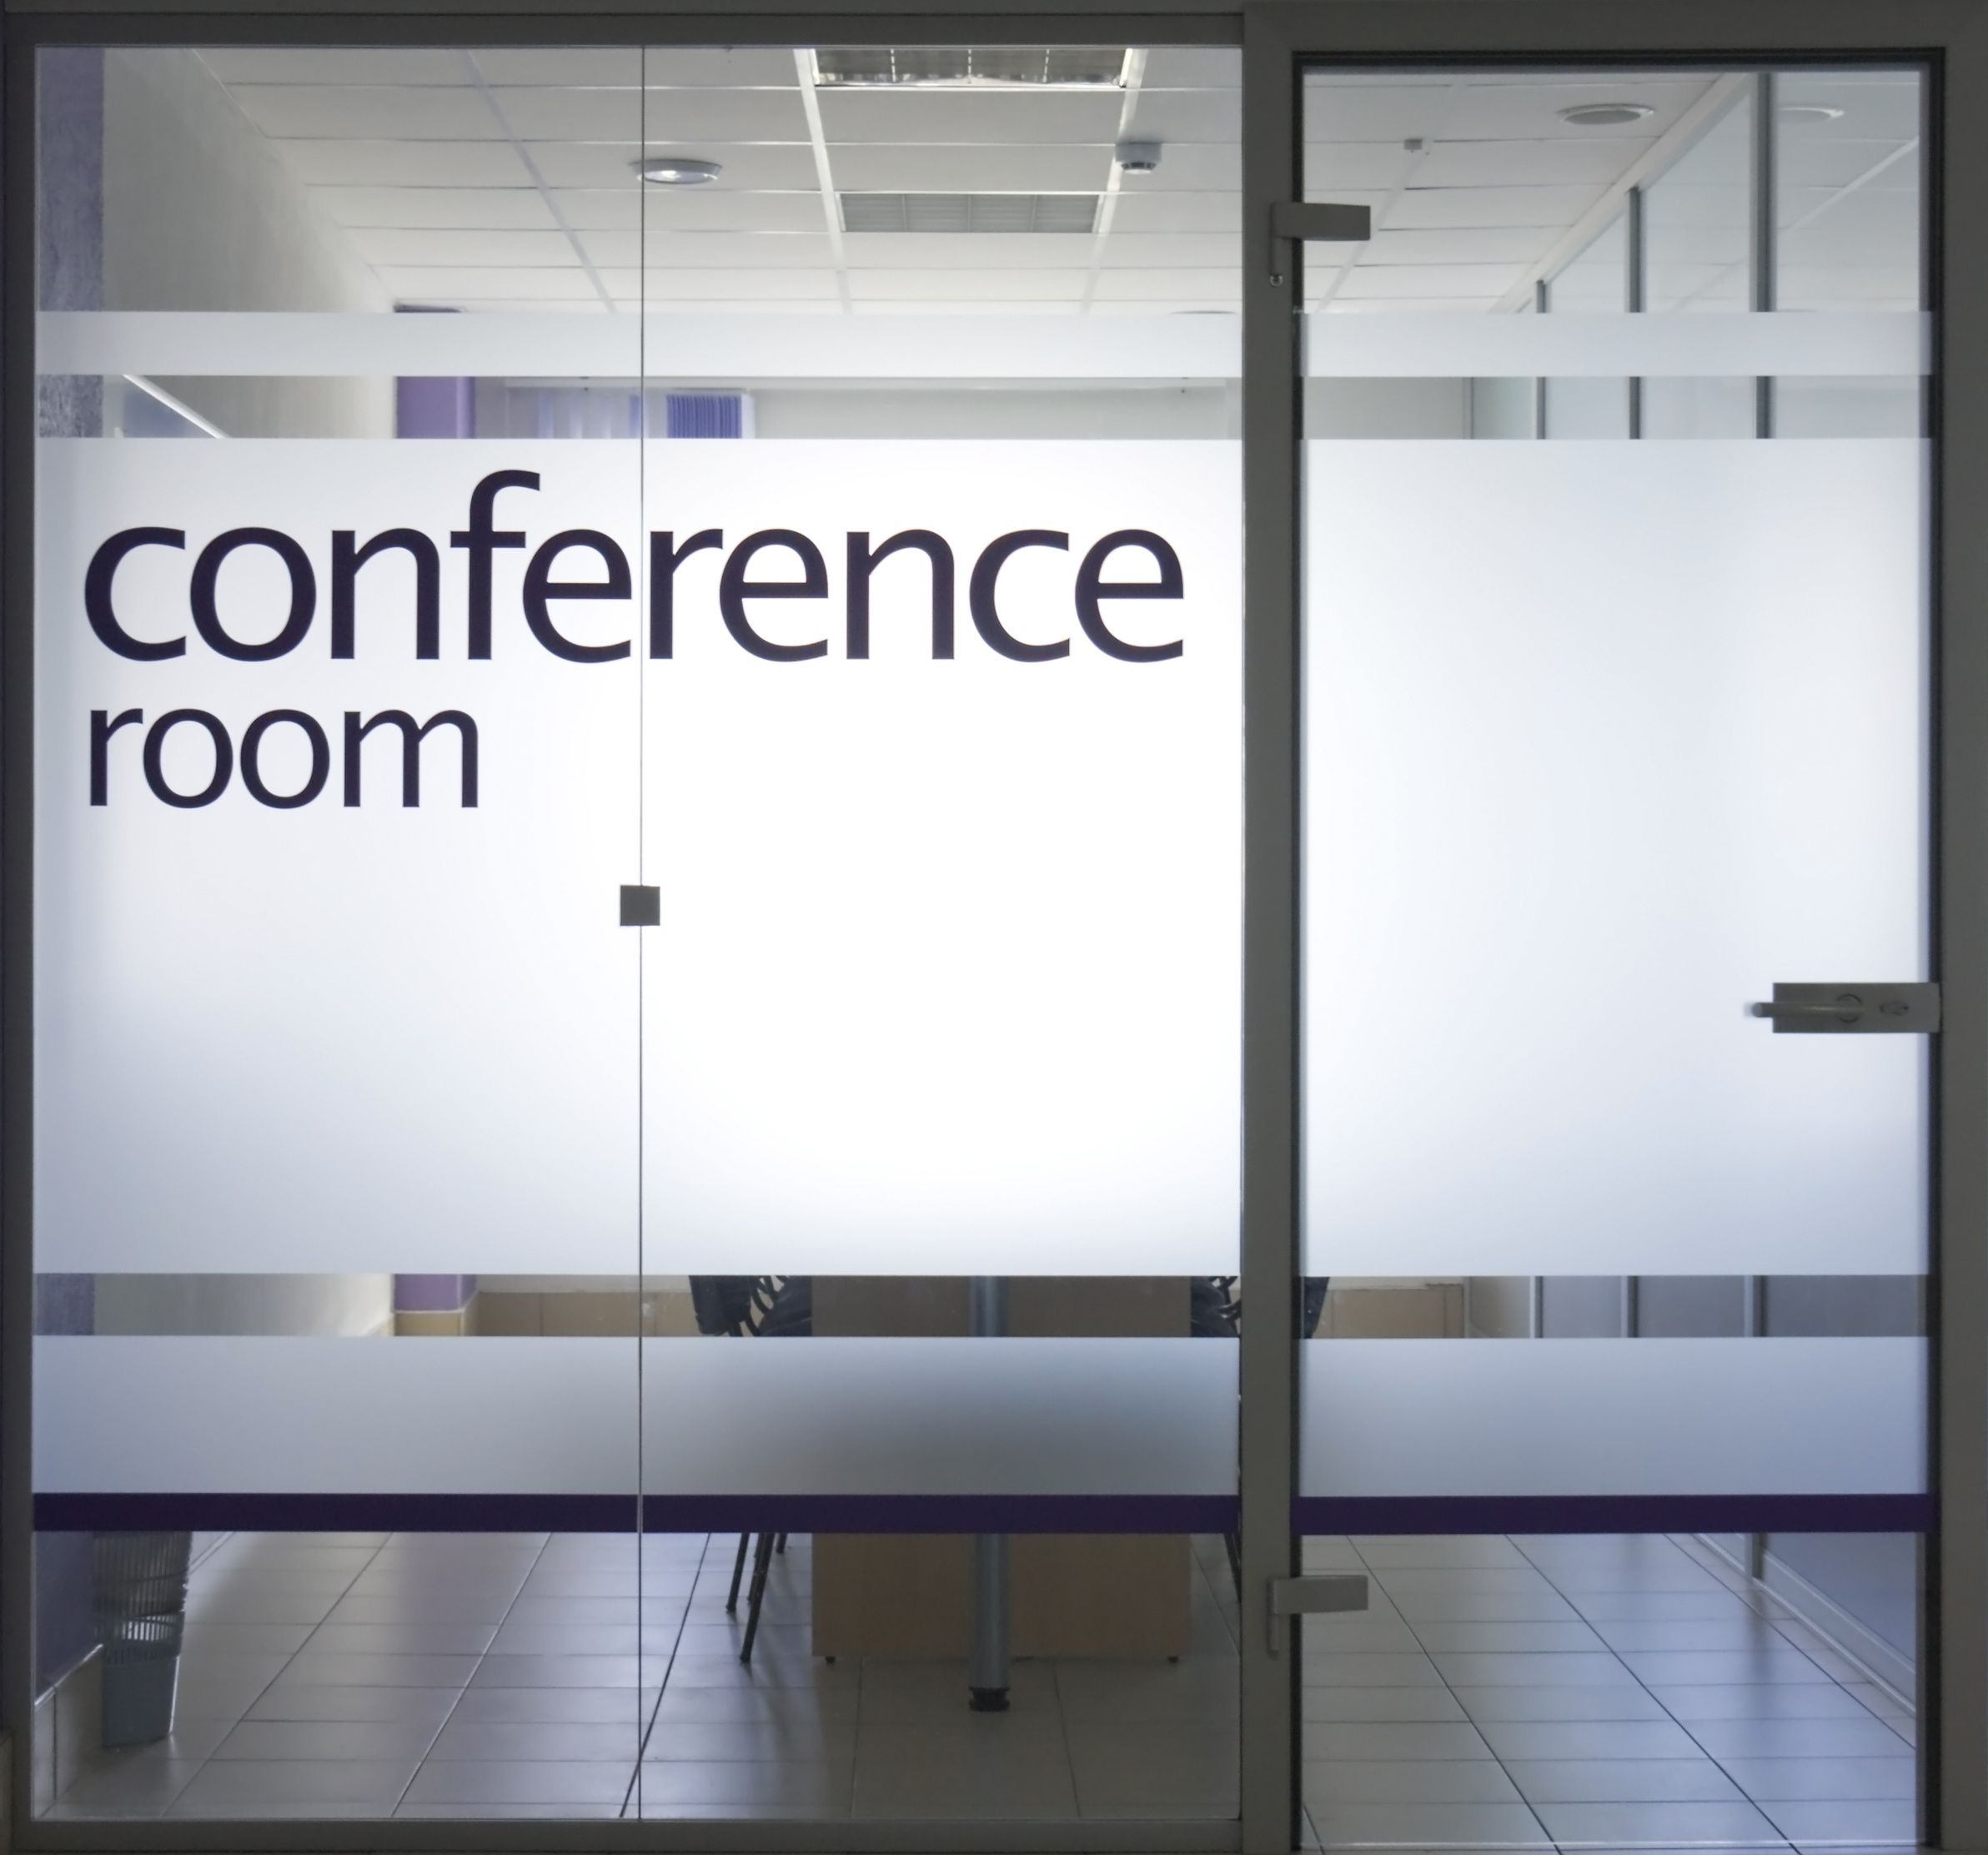 Glass Door And Window Into Conference Room Commercial Glass